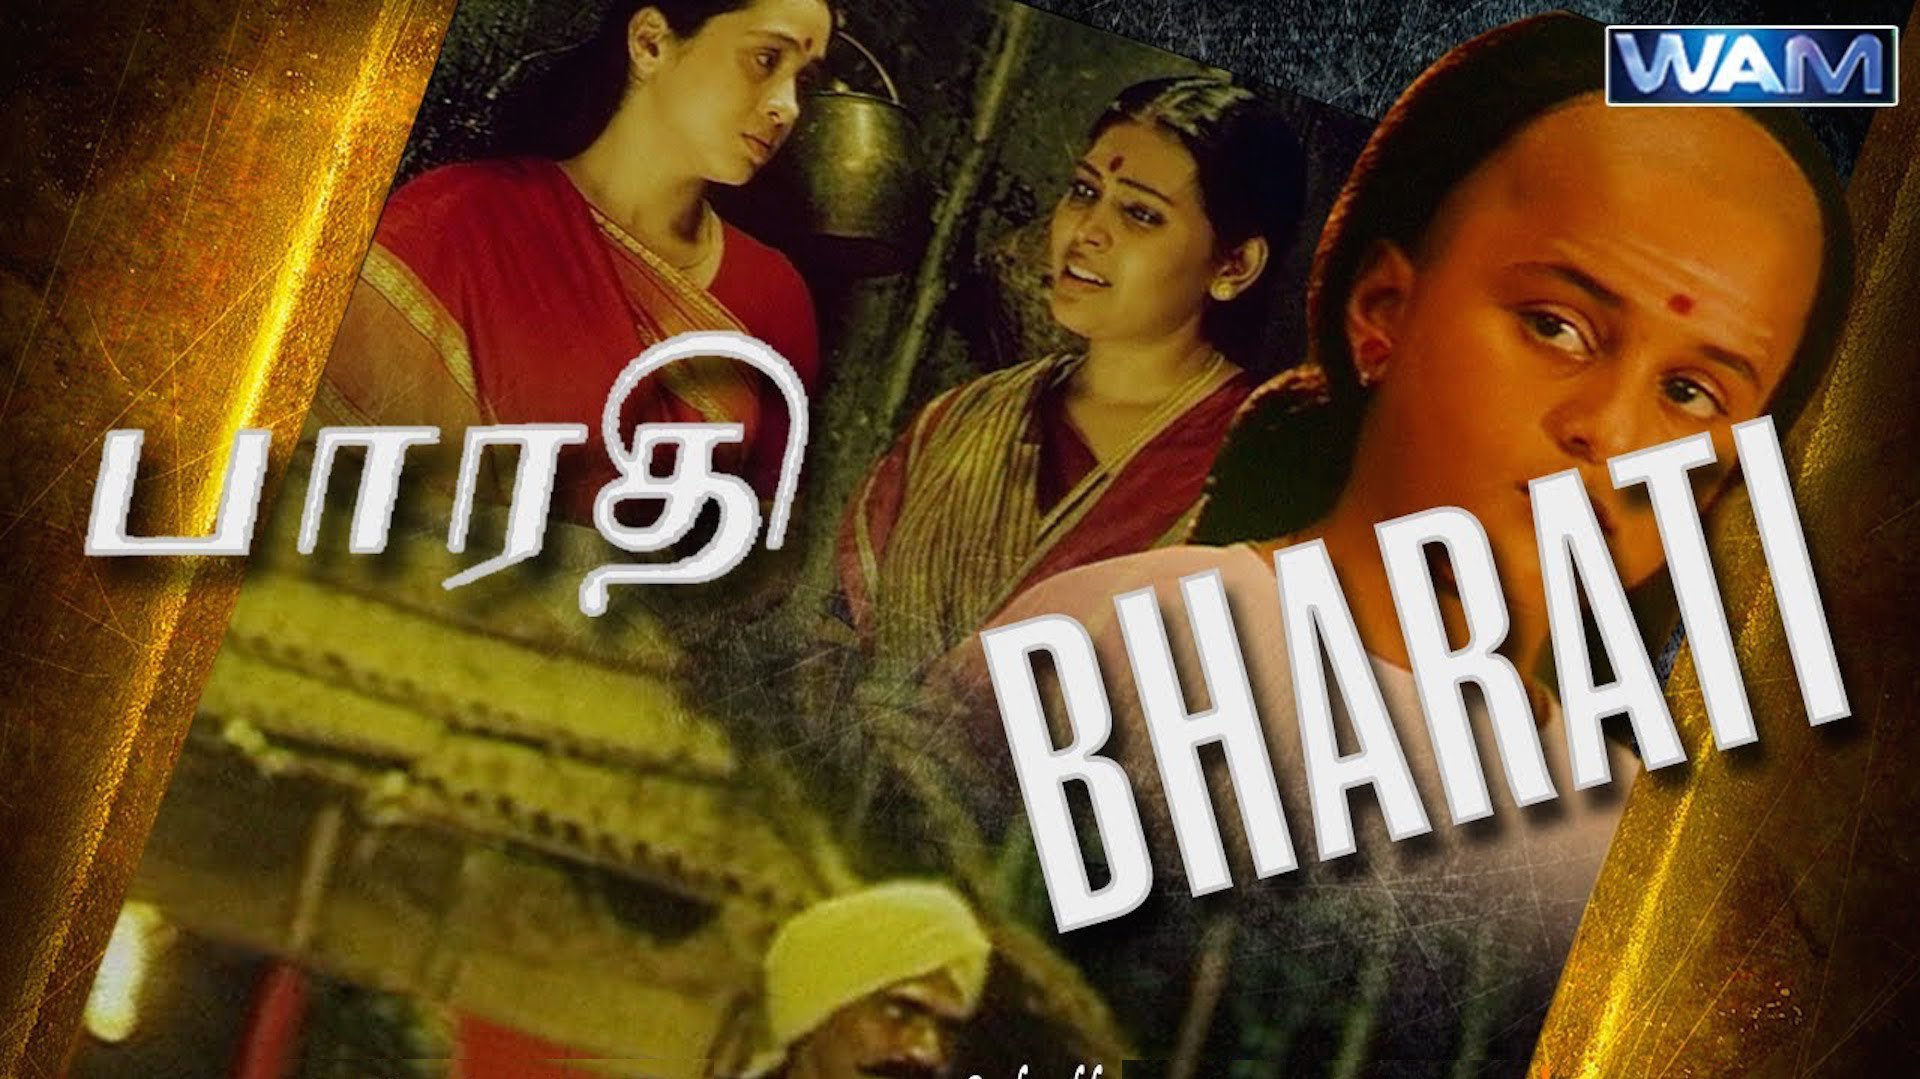 Bharathi kannamma movie download